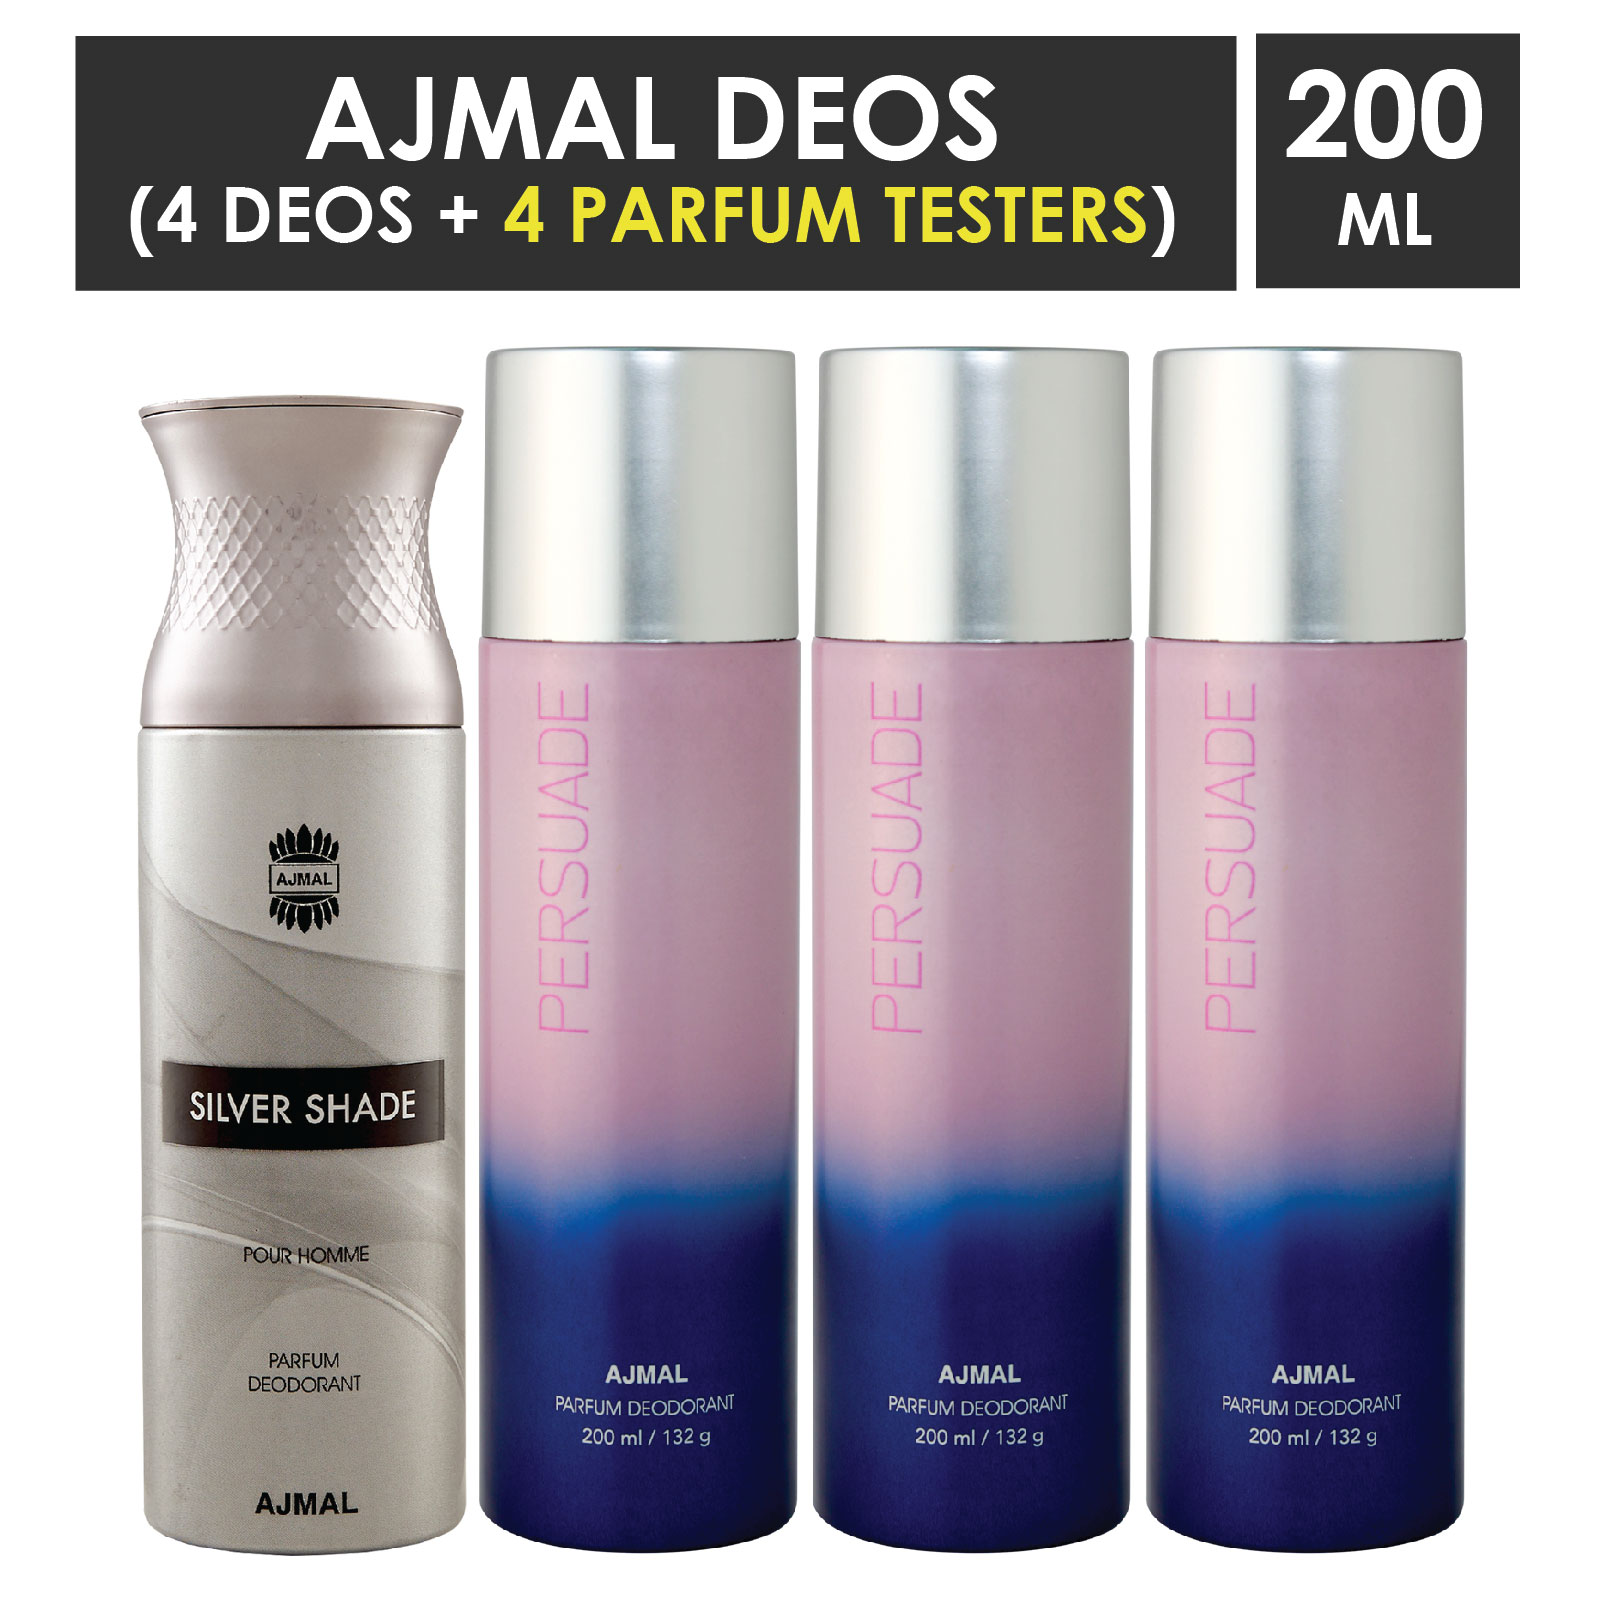 Ajmal | Ajmal 1 Silver Shade for Men and 3 Persuade for Men & Women High Quality Deodorants each 200ML Combo pack of 4 (Total 800ML) + 4 Parfum Testers